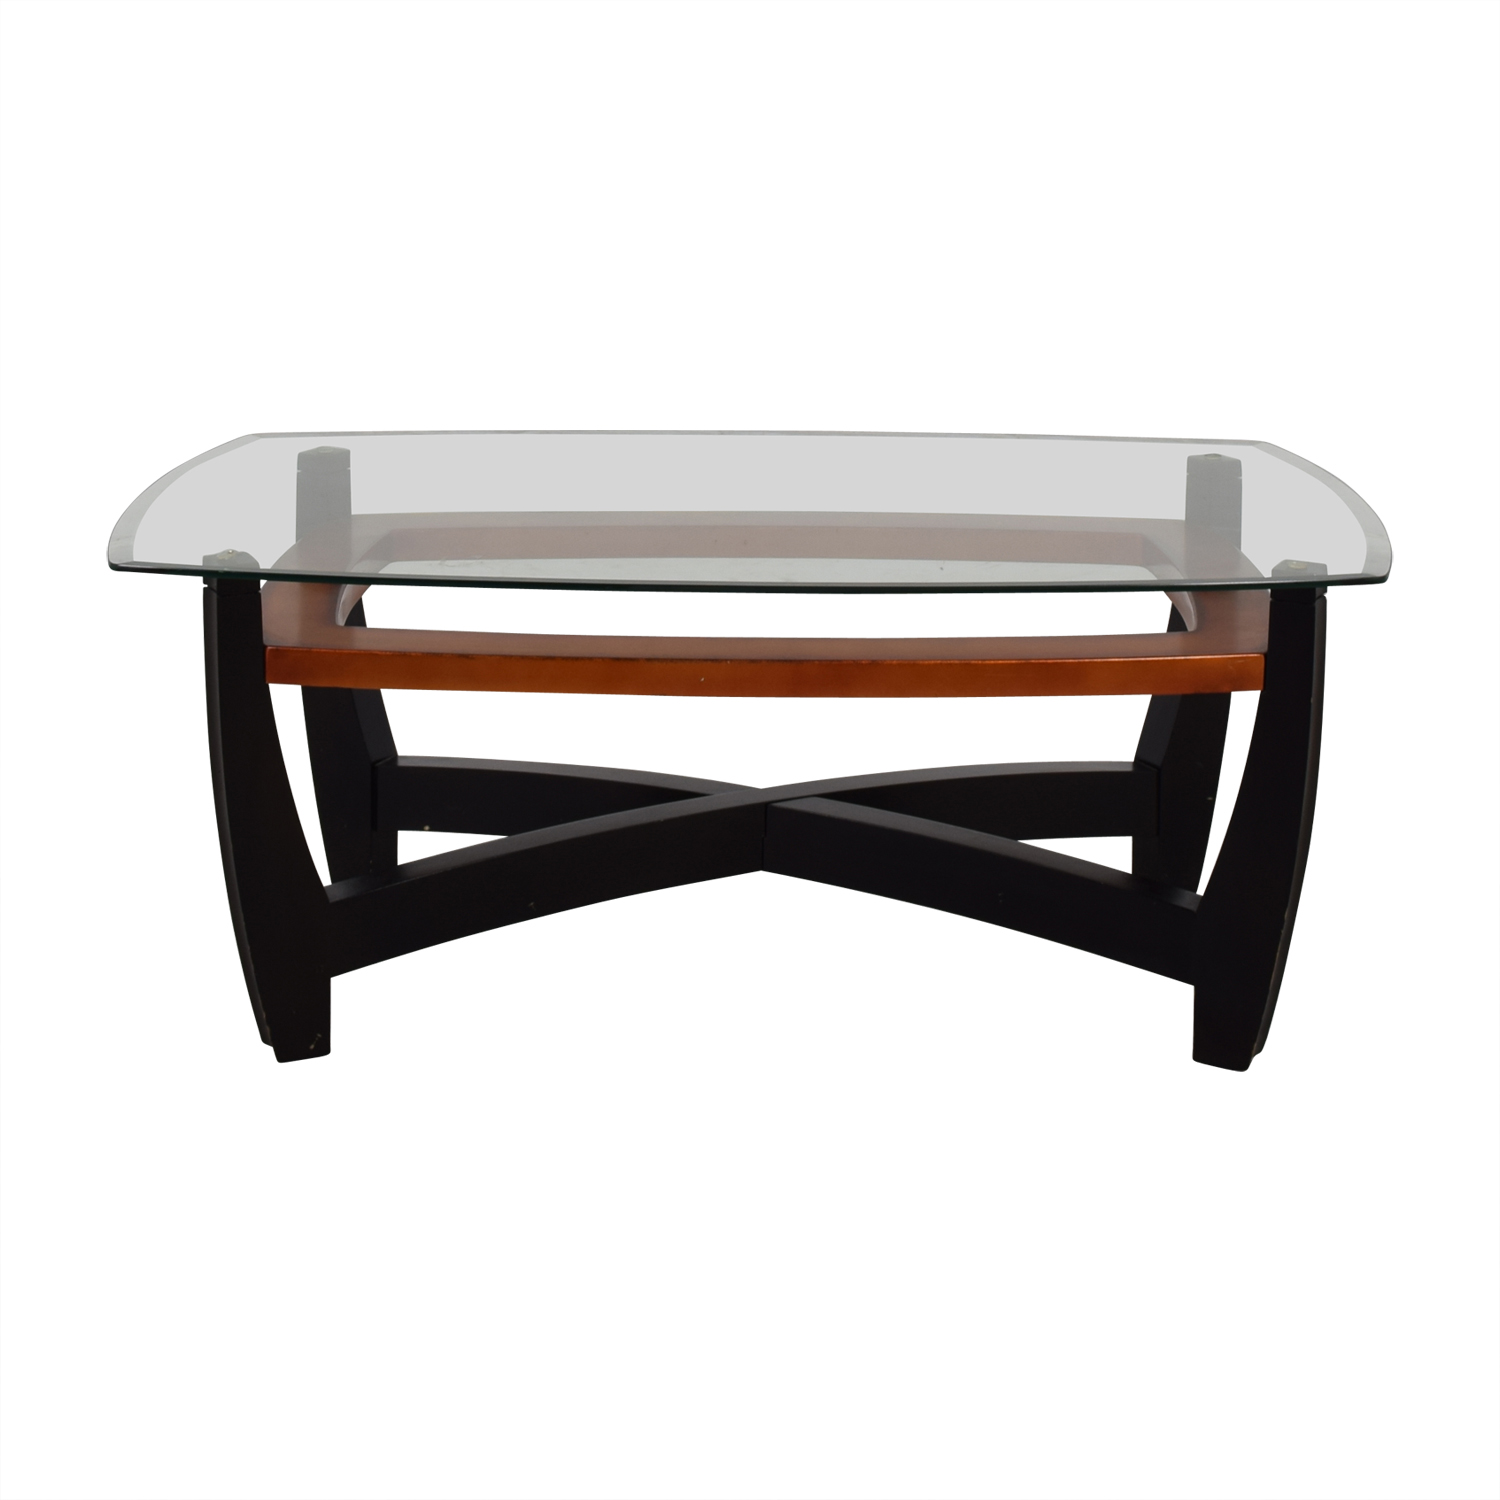 buy Raymour & Flanigan Black and Brown Glass Top Coffee Table Raymour & Flanigan